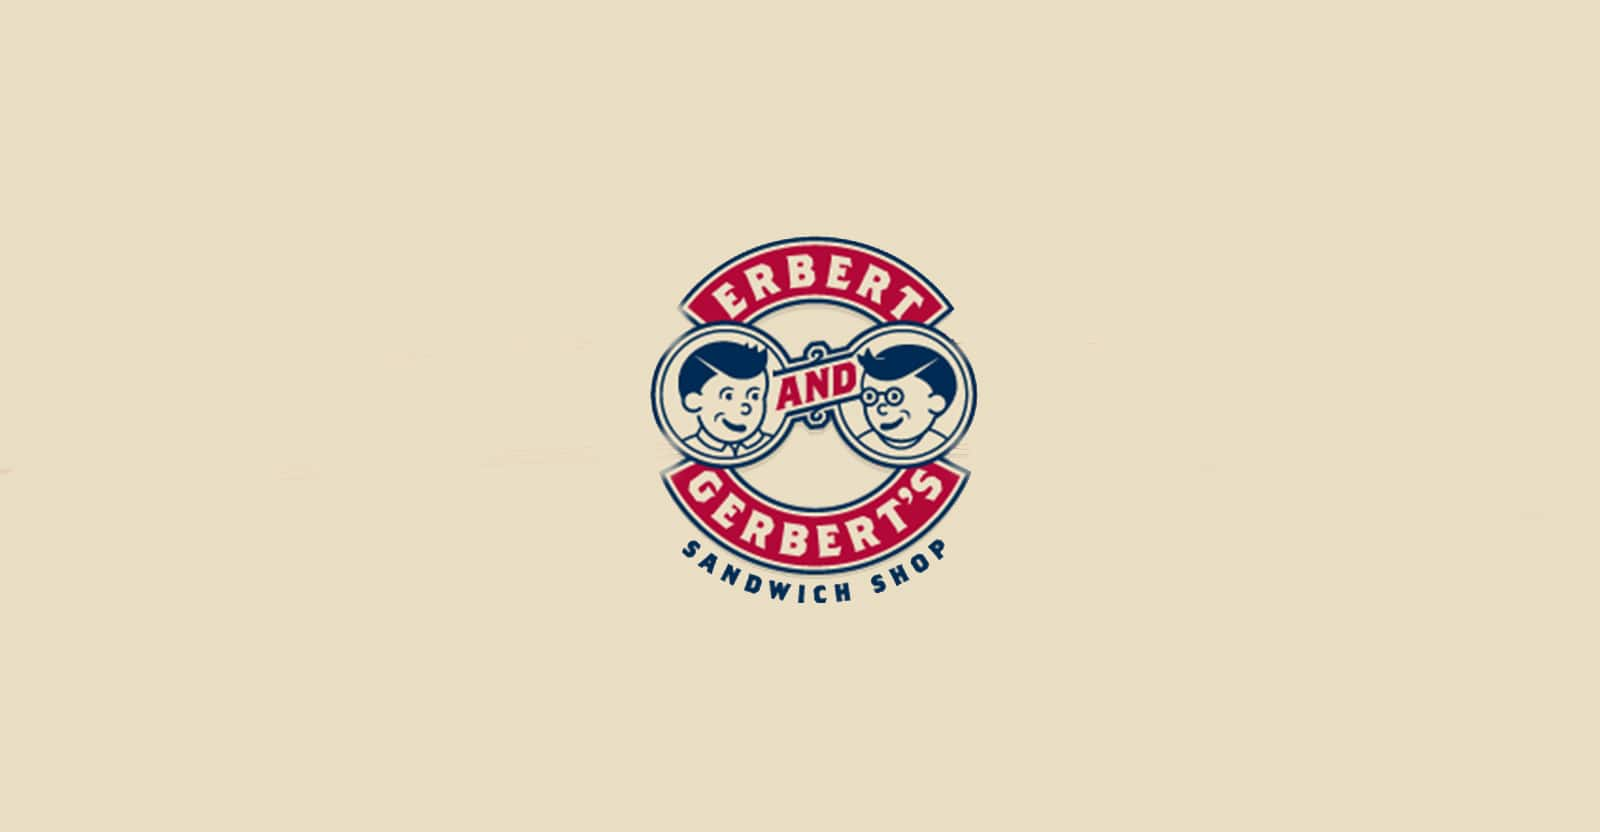 erbert and gerbert's gluten-free menu